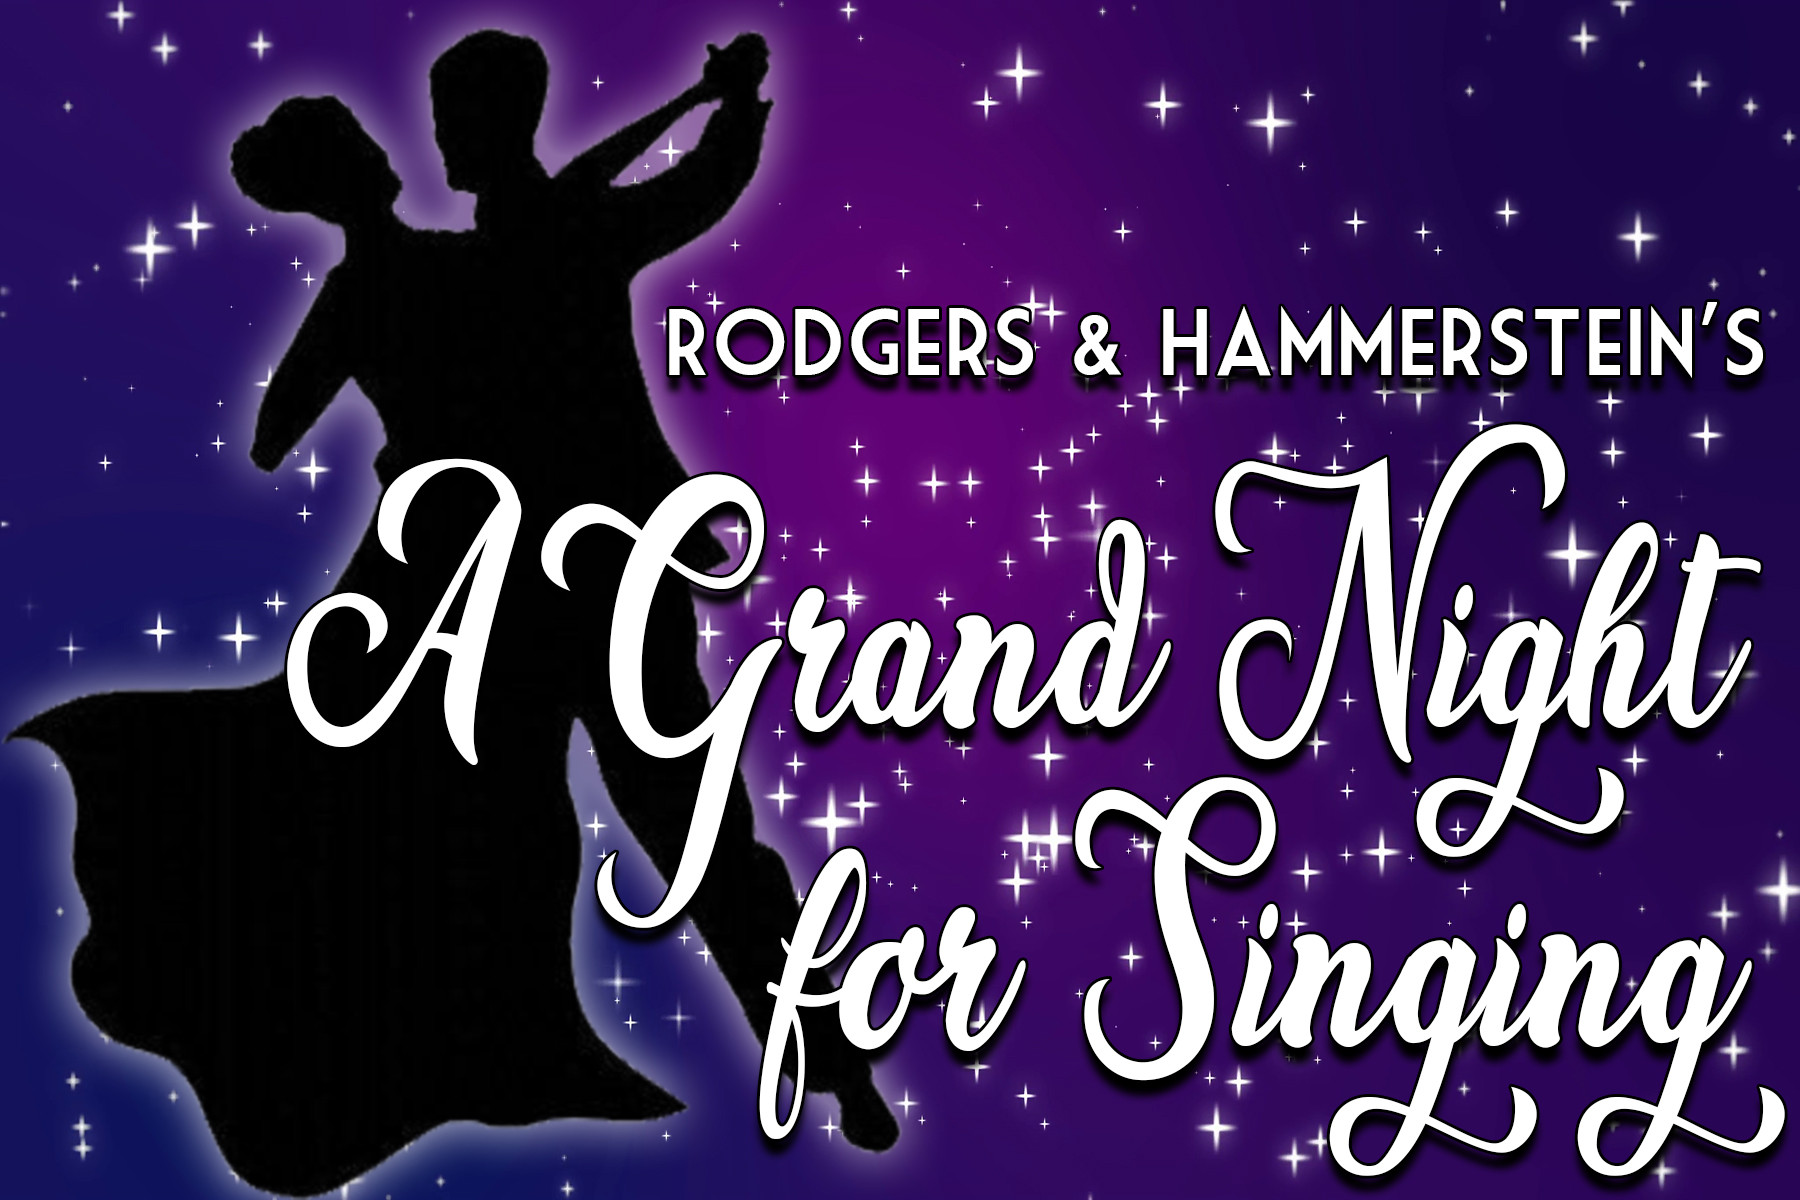 Theatre: A Grand Night For Singing - Rogers and Hammerstein